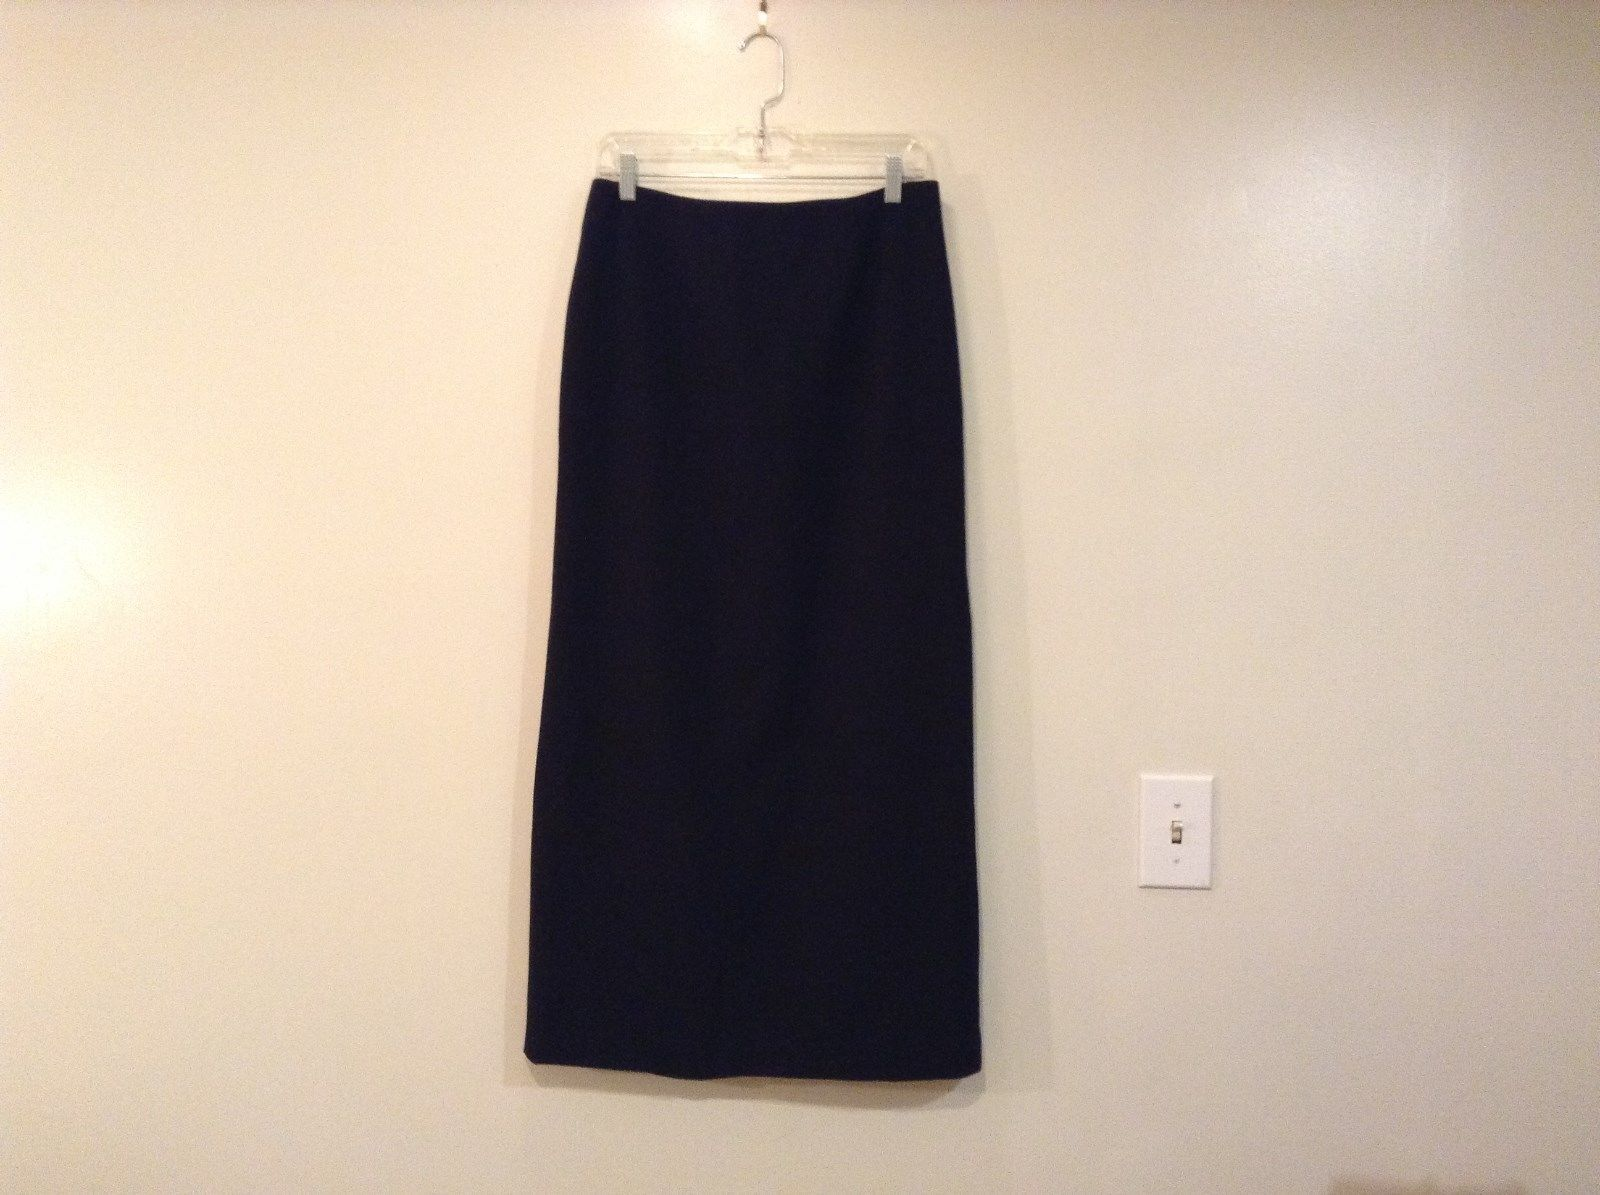 Apostrophe Black Long Fully Lined Skirt Size 12 Back Zipper No Pockets Back Slit